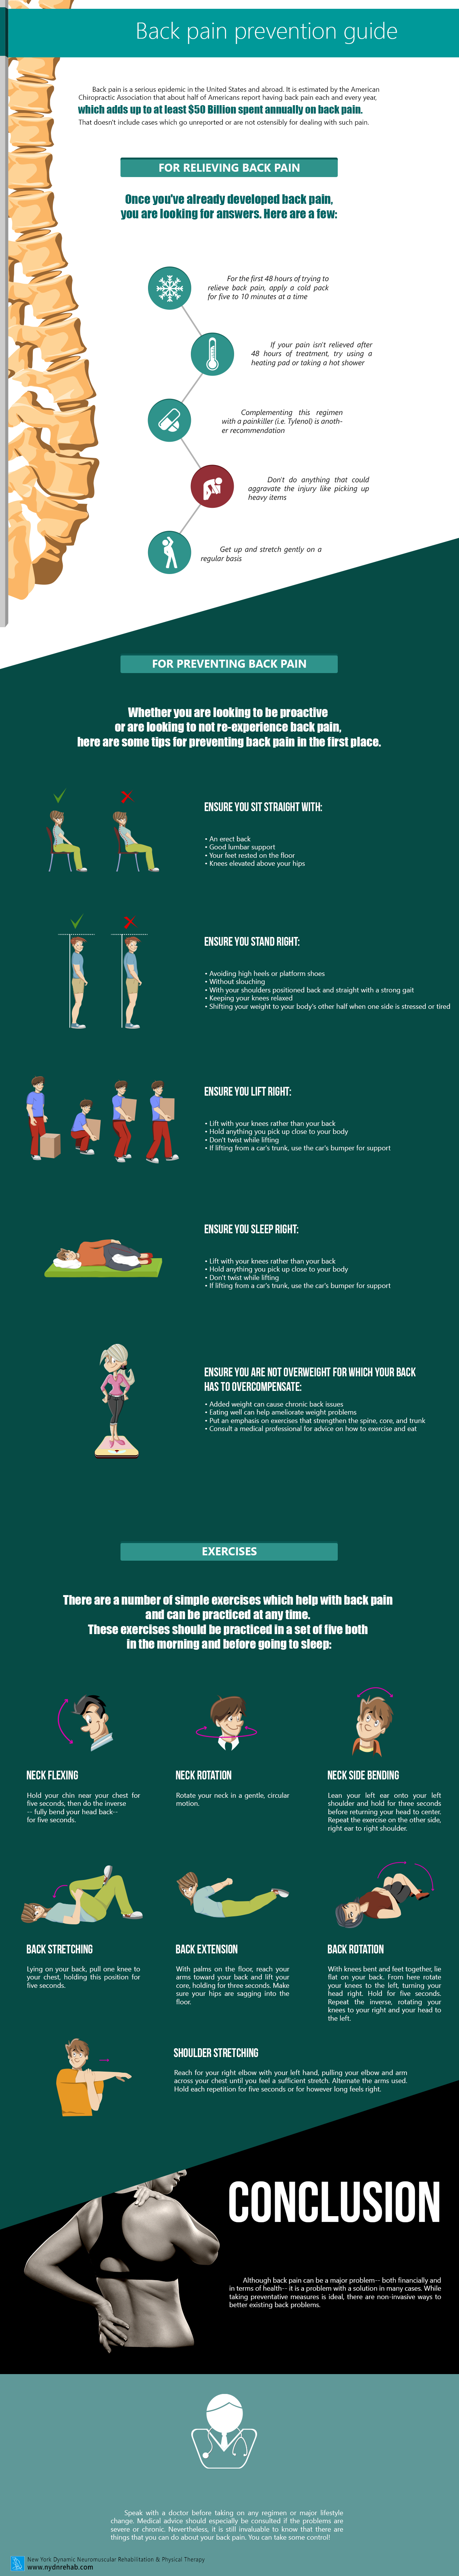 Back-pain-prevention-guide-infographic